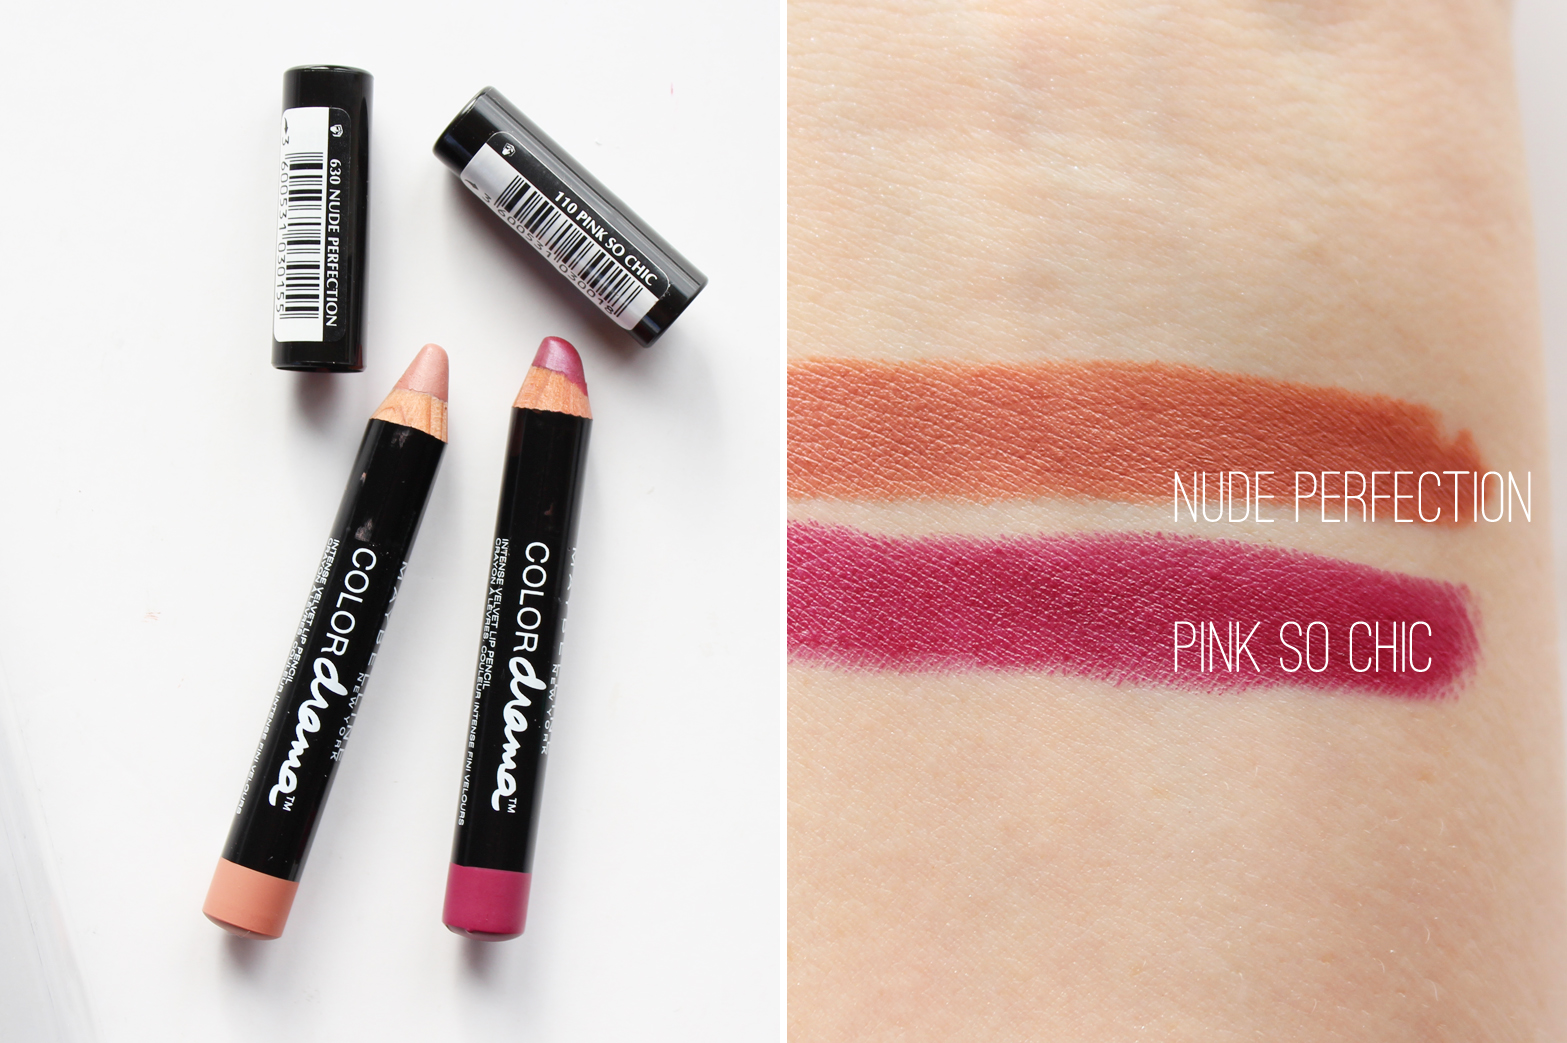 NEW IN | Lots of Lip Products - Maybelline, L'Oreal, Chi Chi + Karen Murrell - CassandraMyee